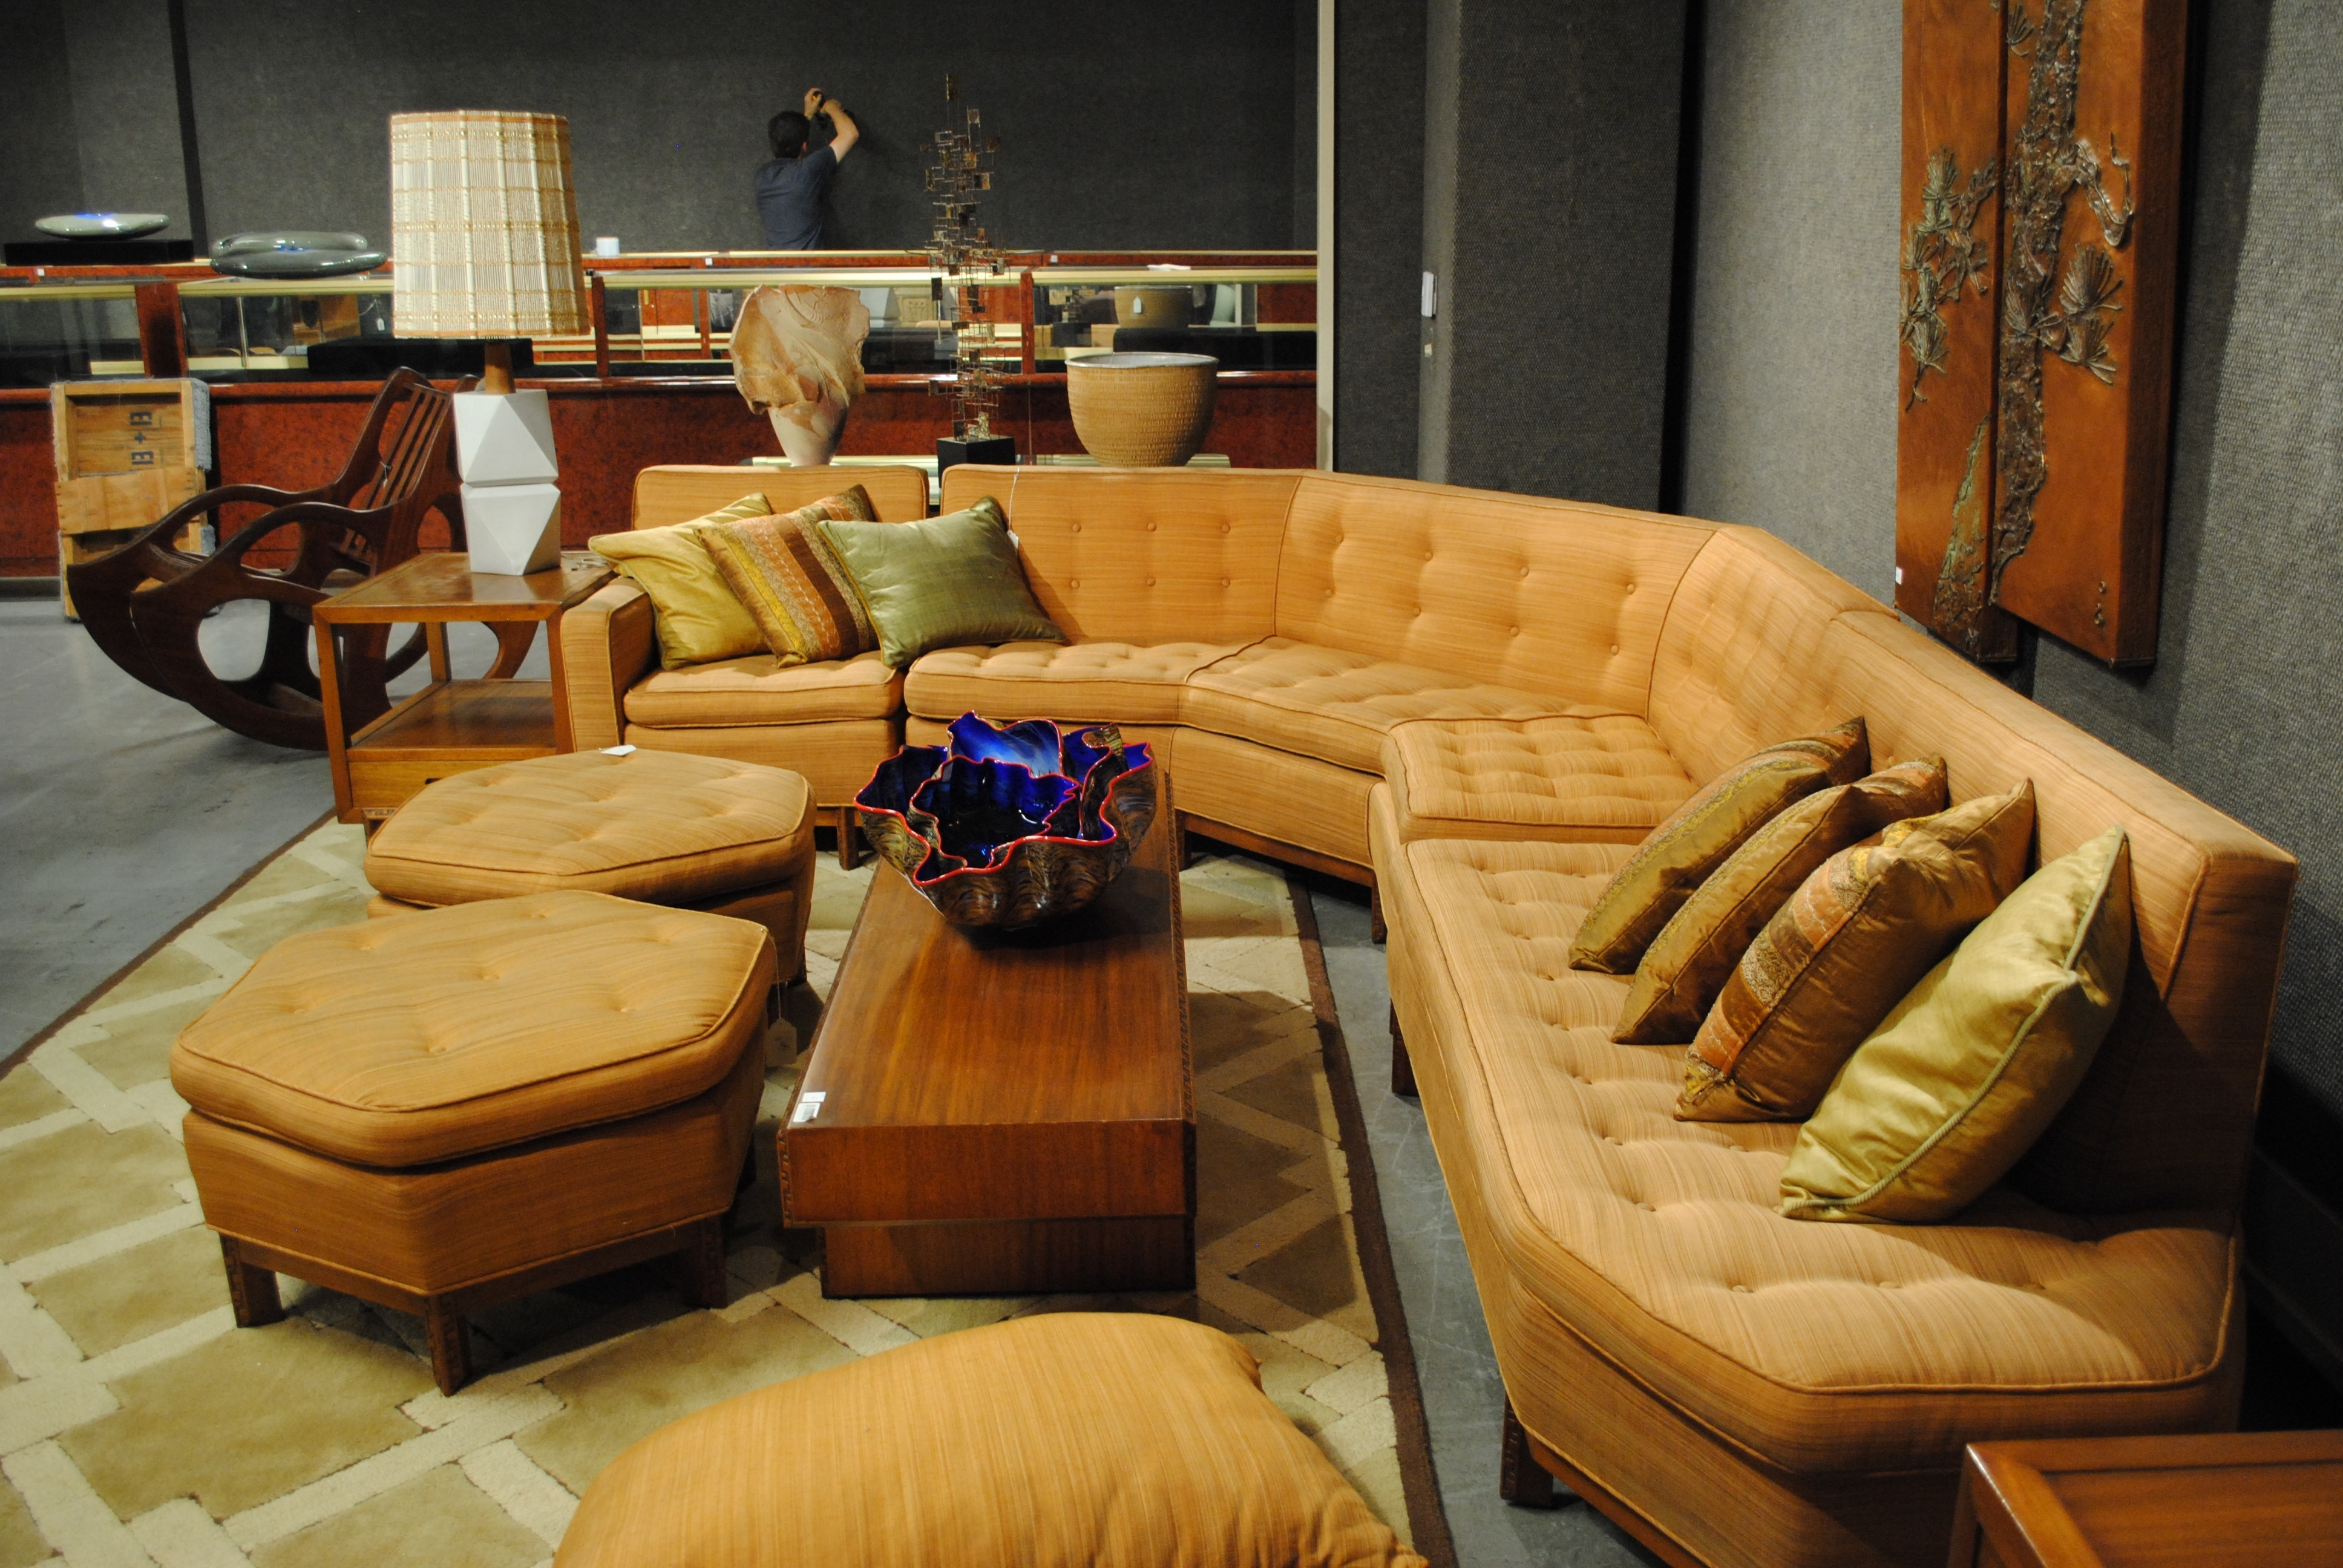 Vintage 1950S Sectional Sofa | Sofa Ideas With Vintage Sectional Sofas (Image 7 of 10)